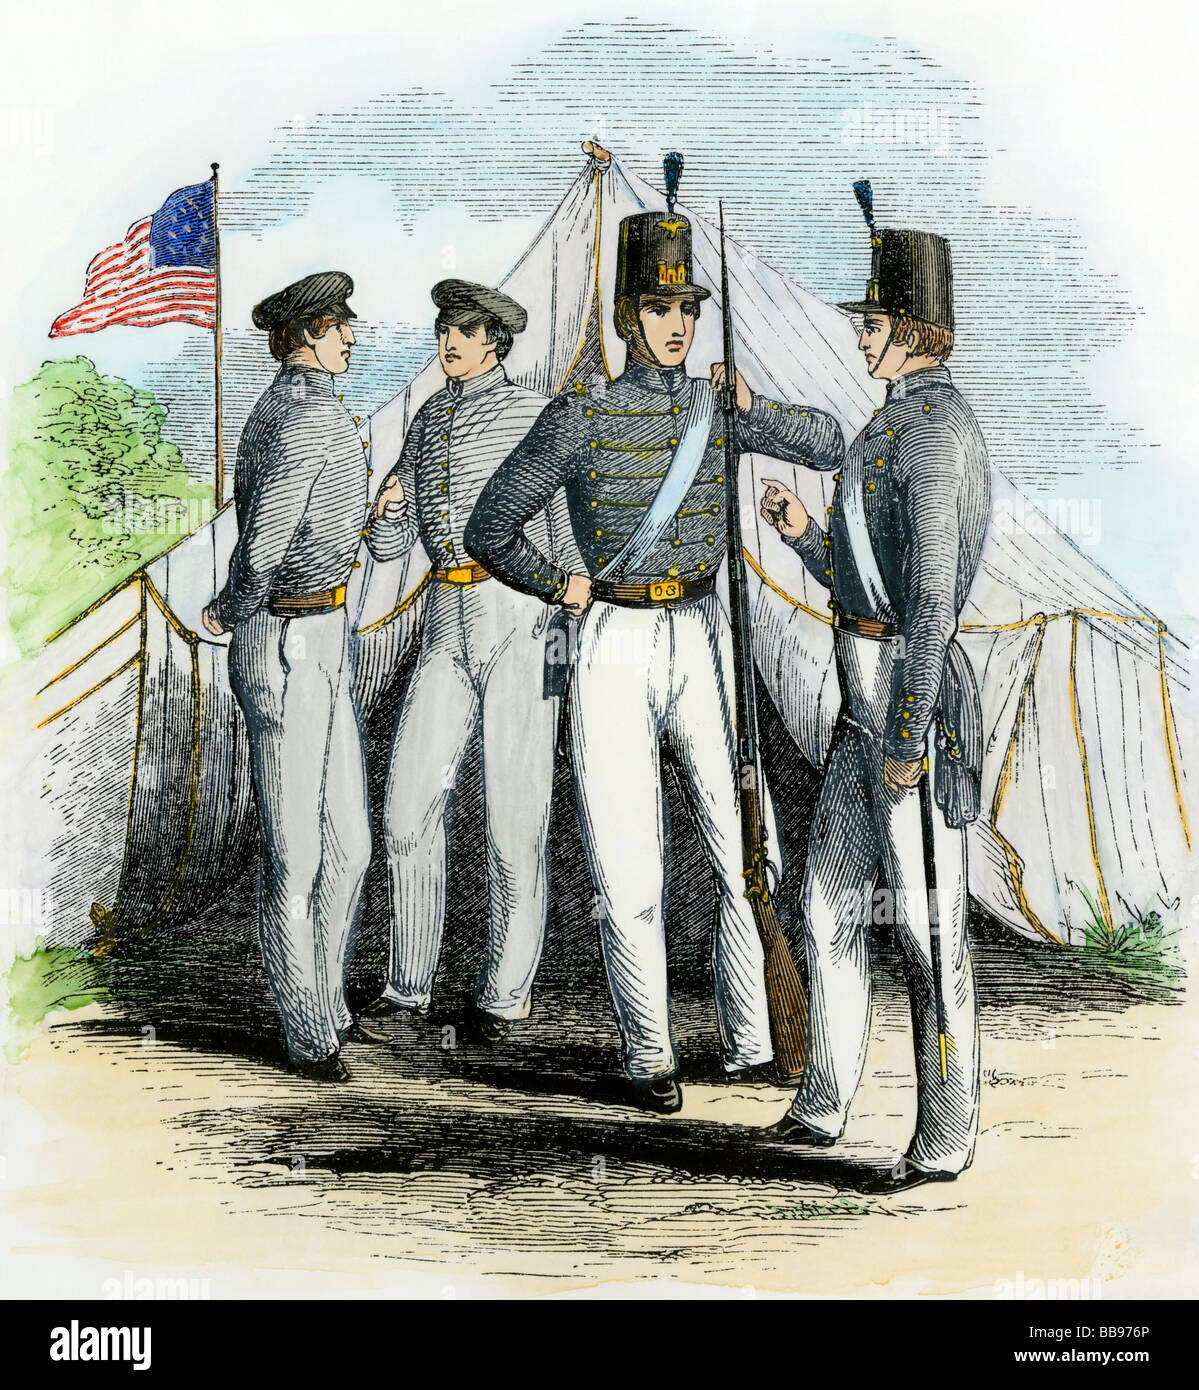 Cadets at the US Military Academy West Point 1850s. Hand-colored woodcut - Stock Image